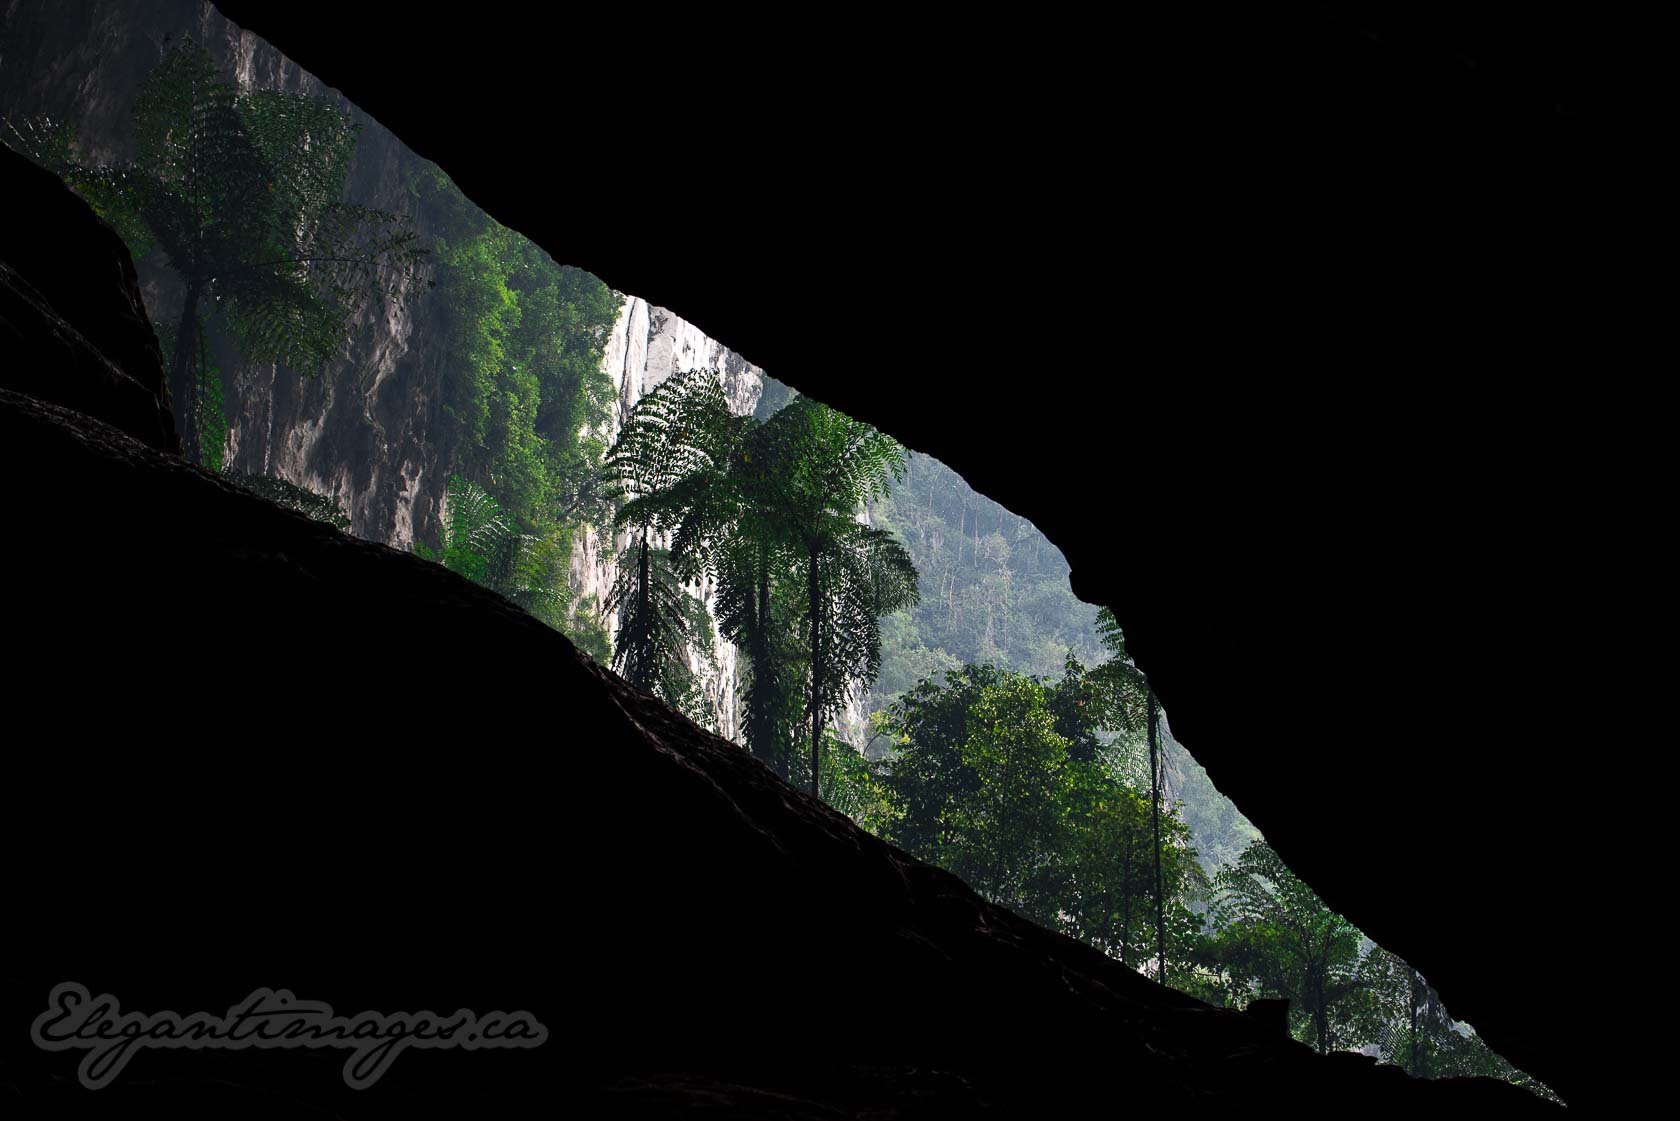 Deer Cave and Lang Cave hike in Gunung Mulu National Park